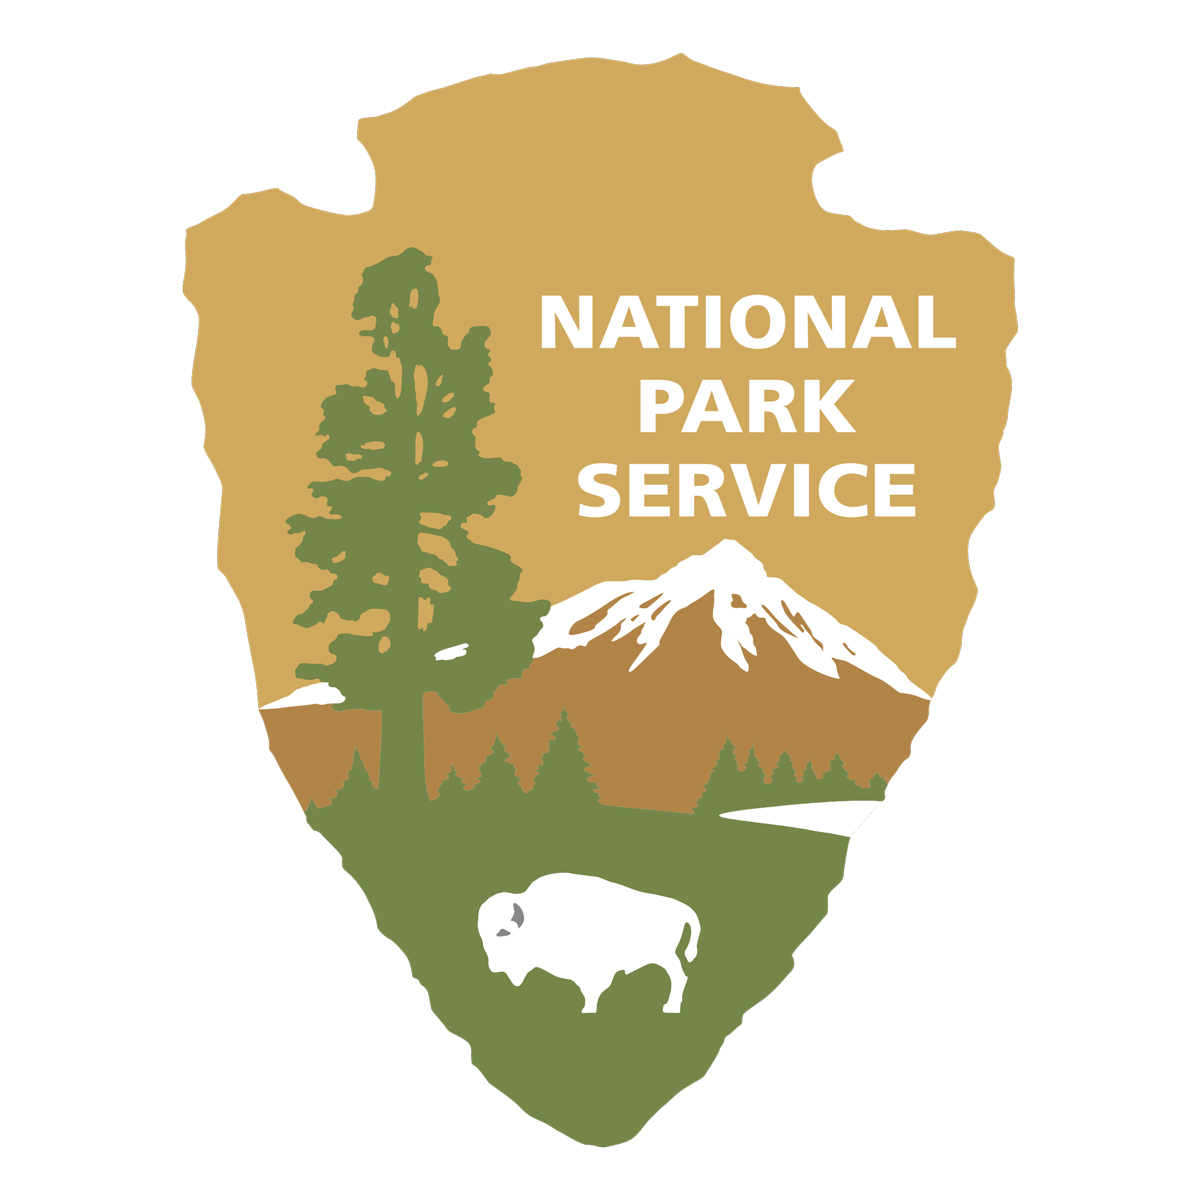 National Park Pass, prices and passes vary, nps.gov